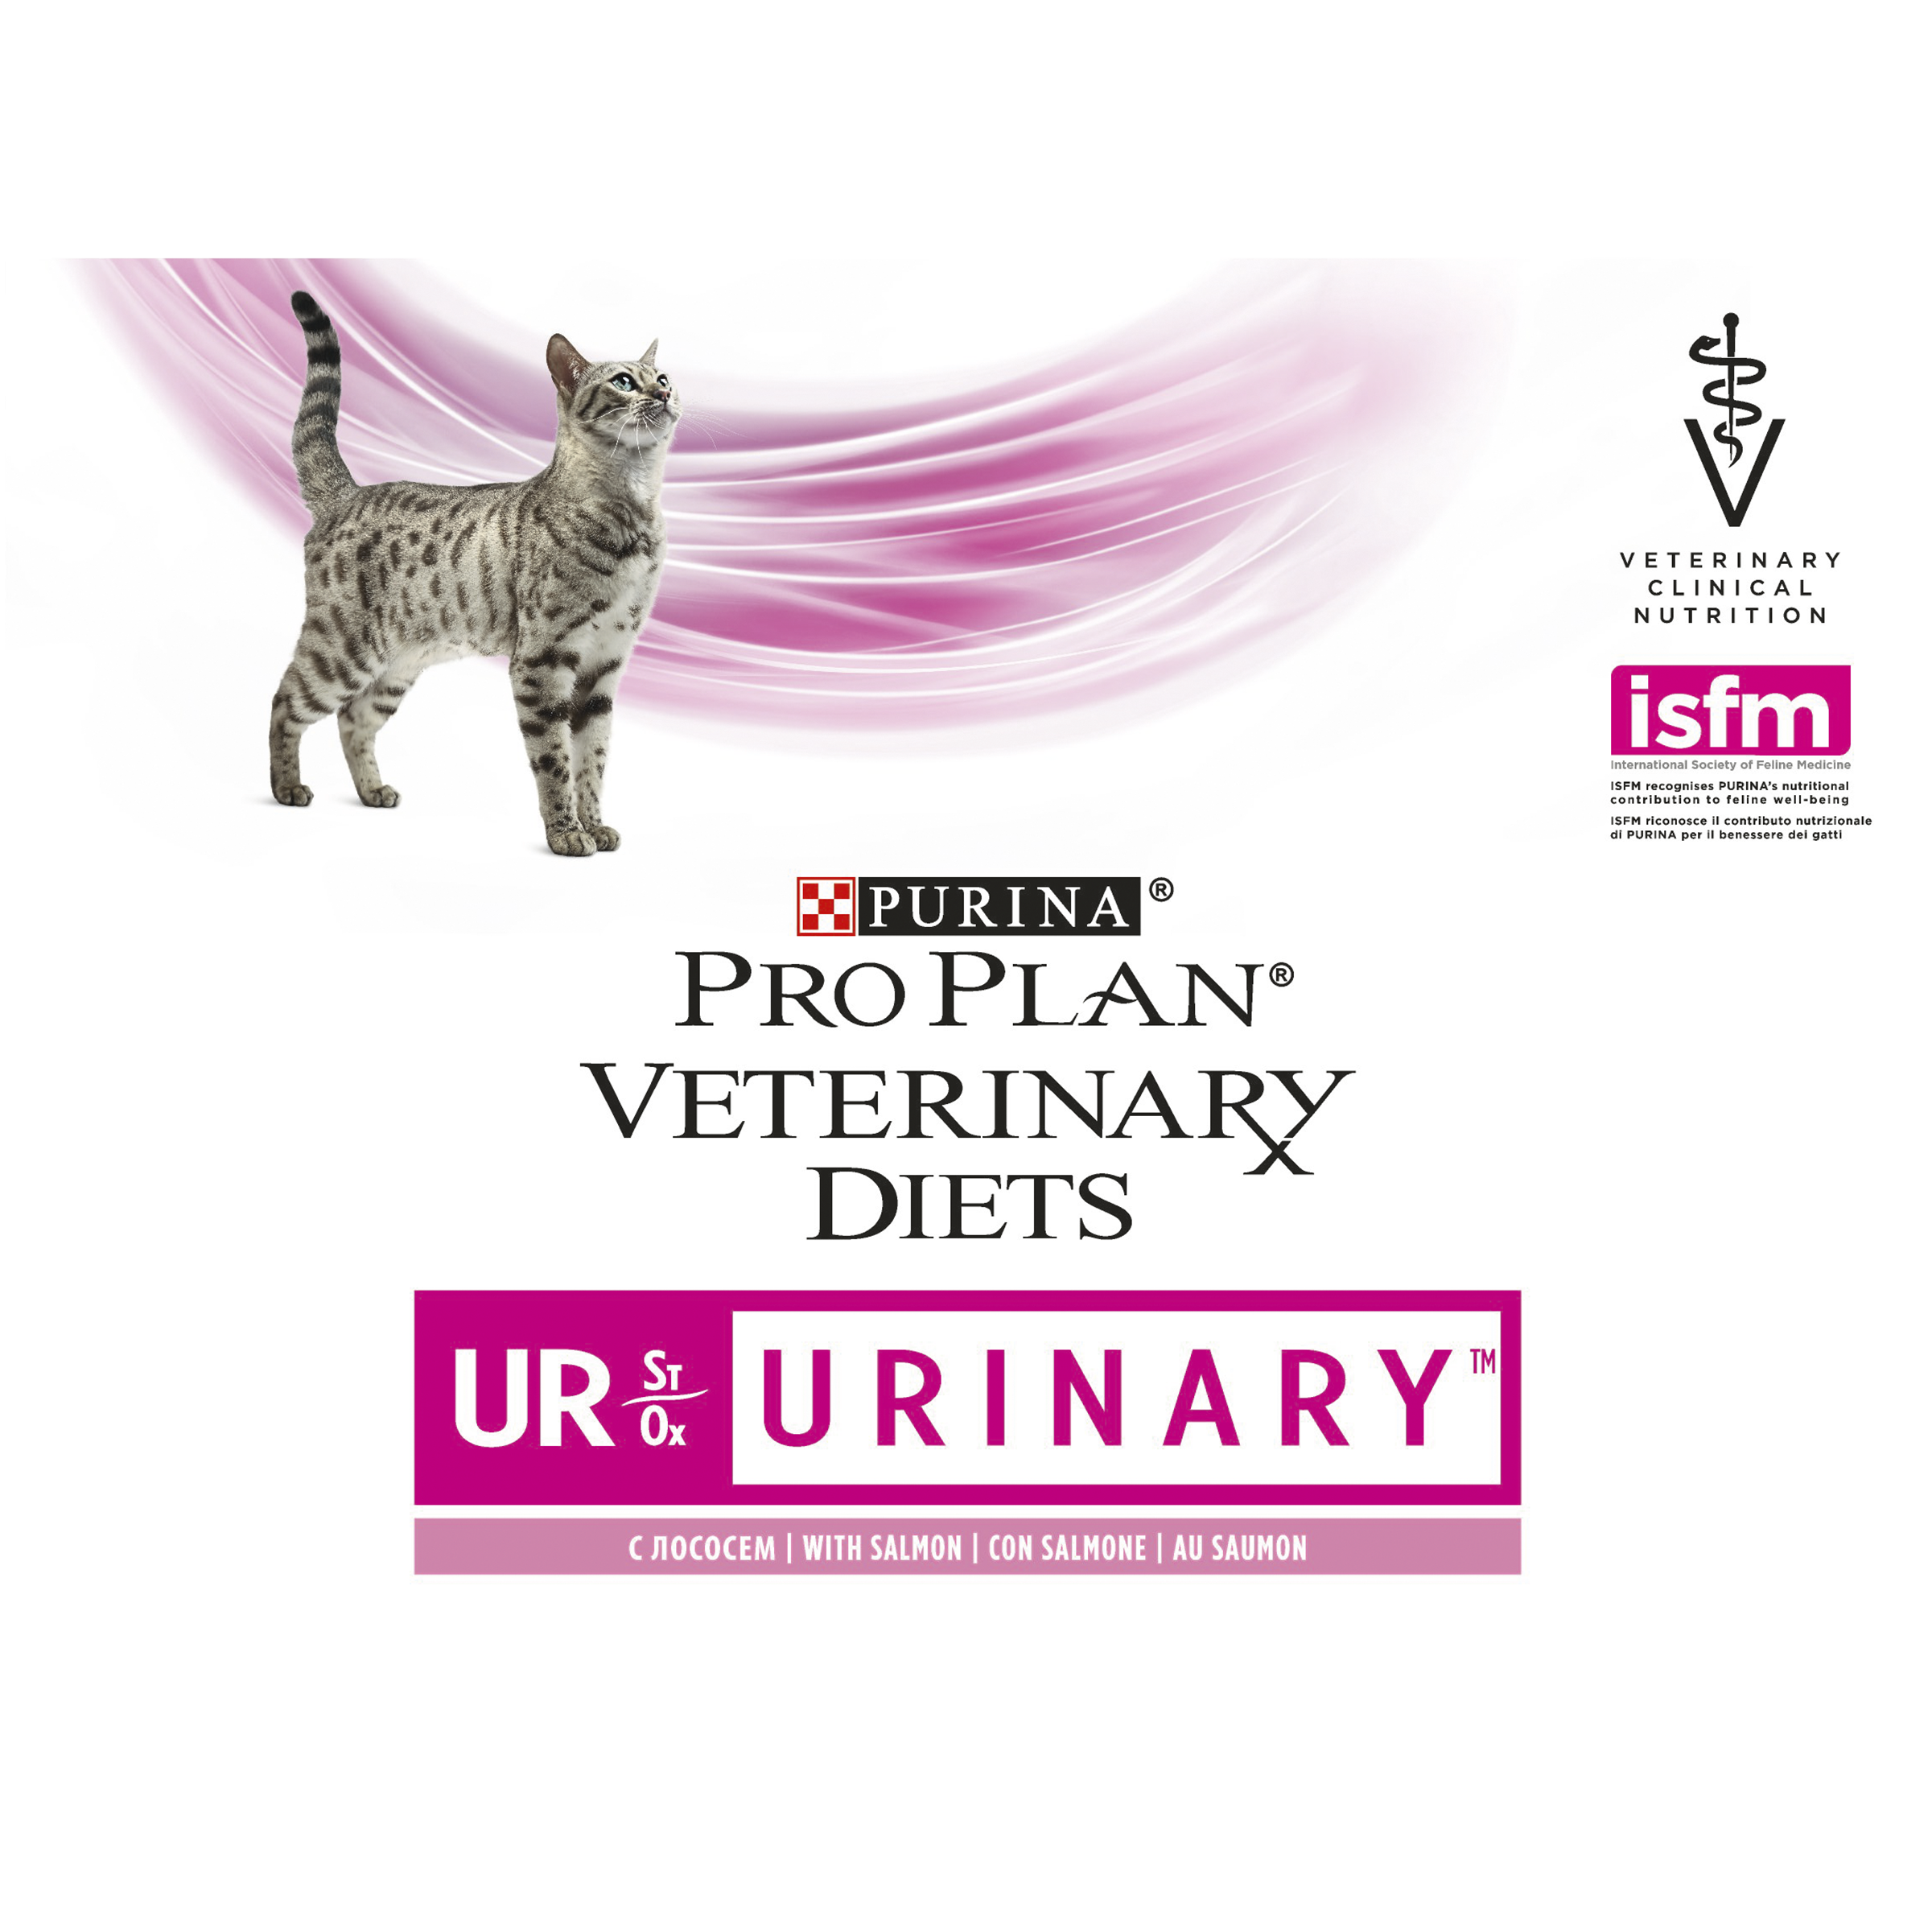 PURINA PRO PLAN VETERINARY DIETS umido gatto UR Urinary StOx con salmone